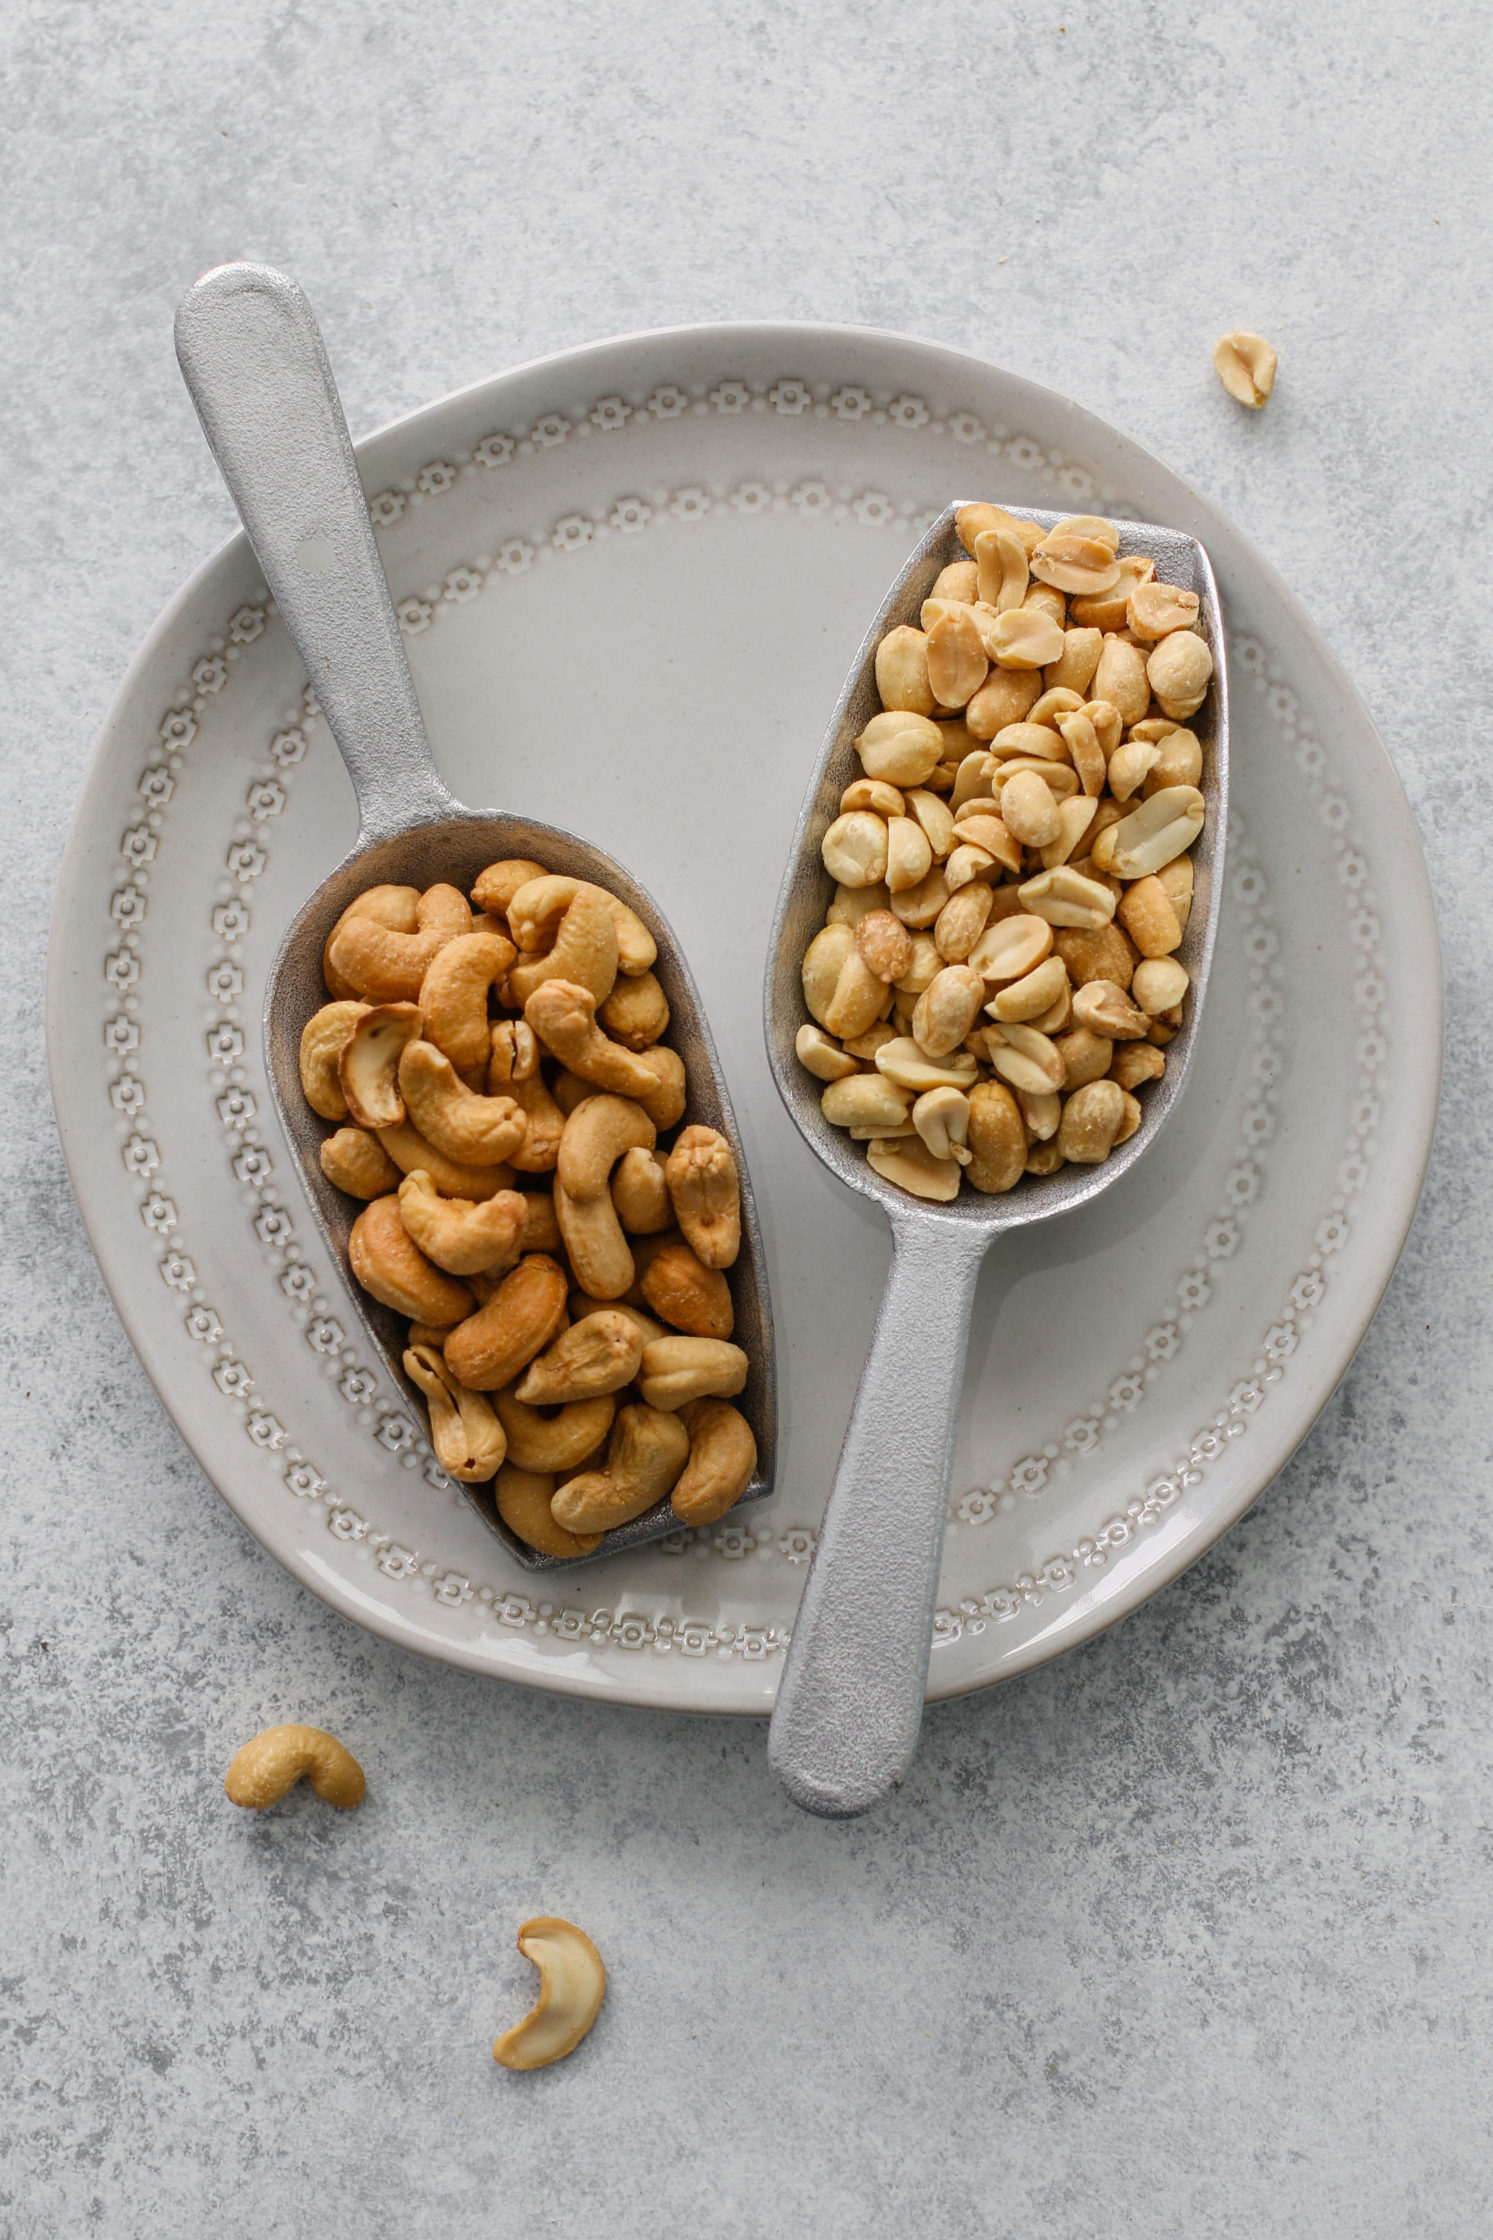 2-Ingredient Roasted Peanut-Cashew Butter & Banana Chips by Flora & Vino